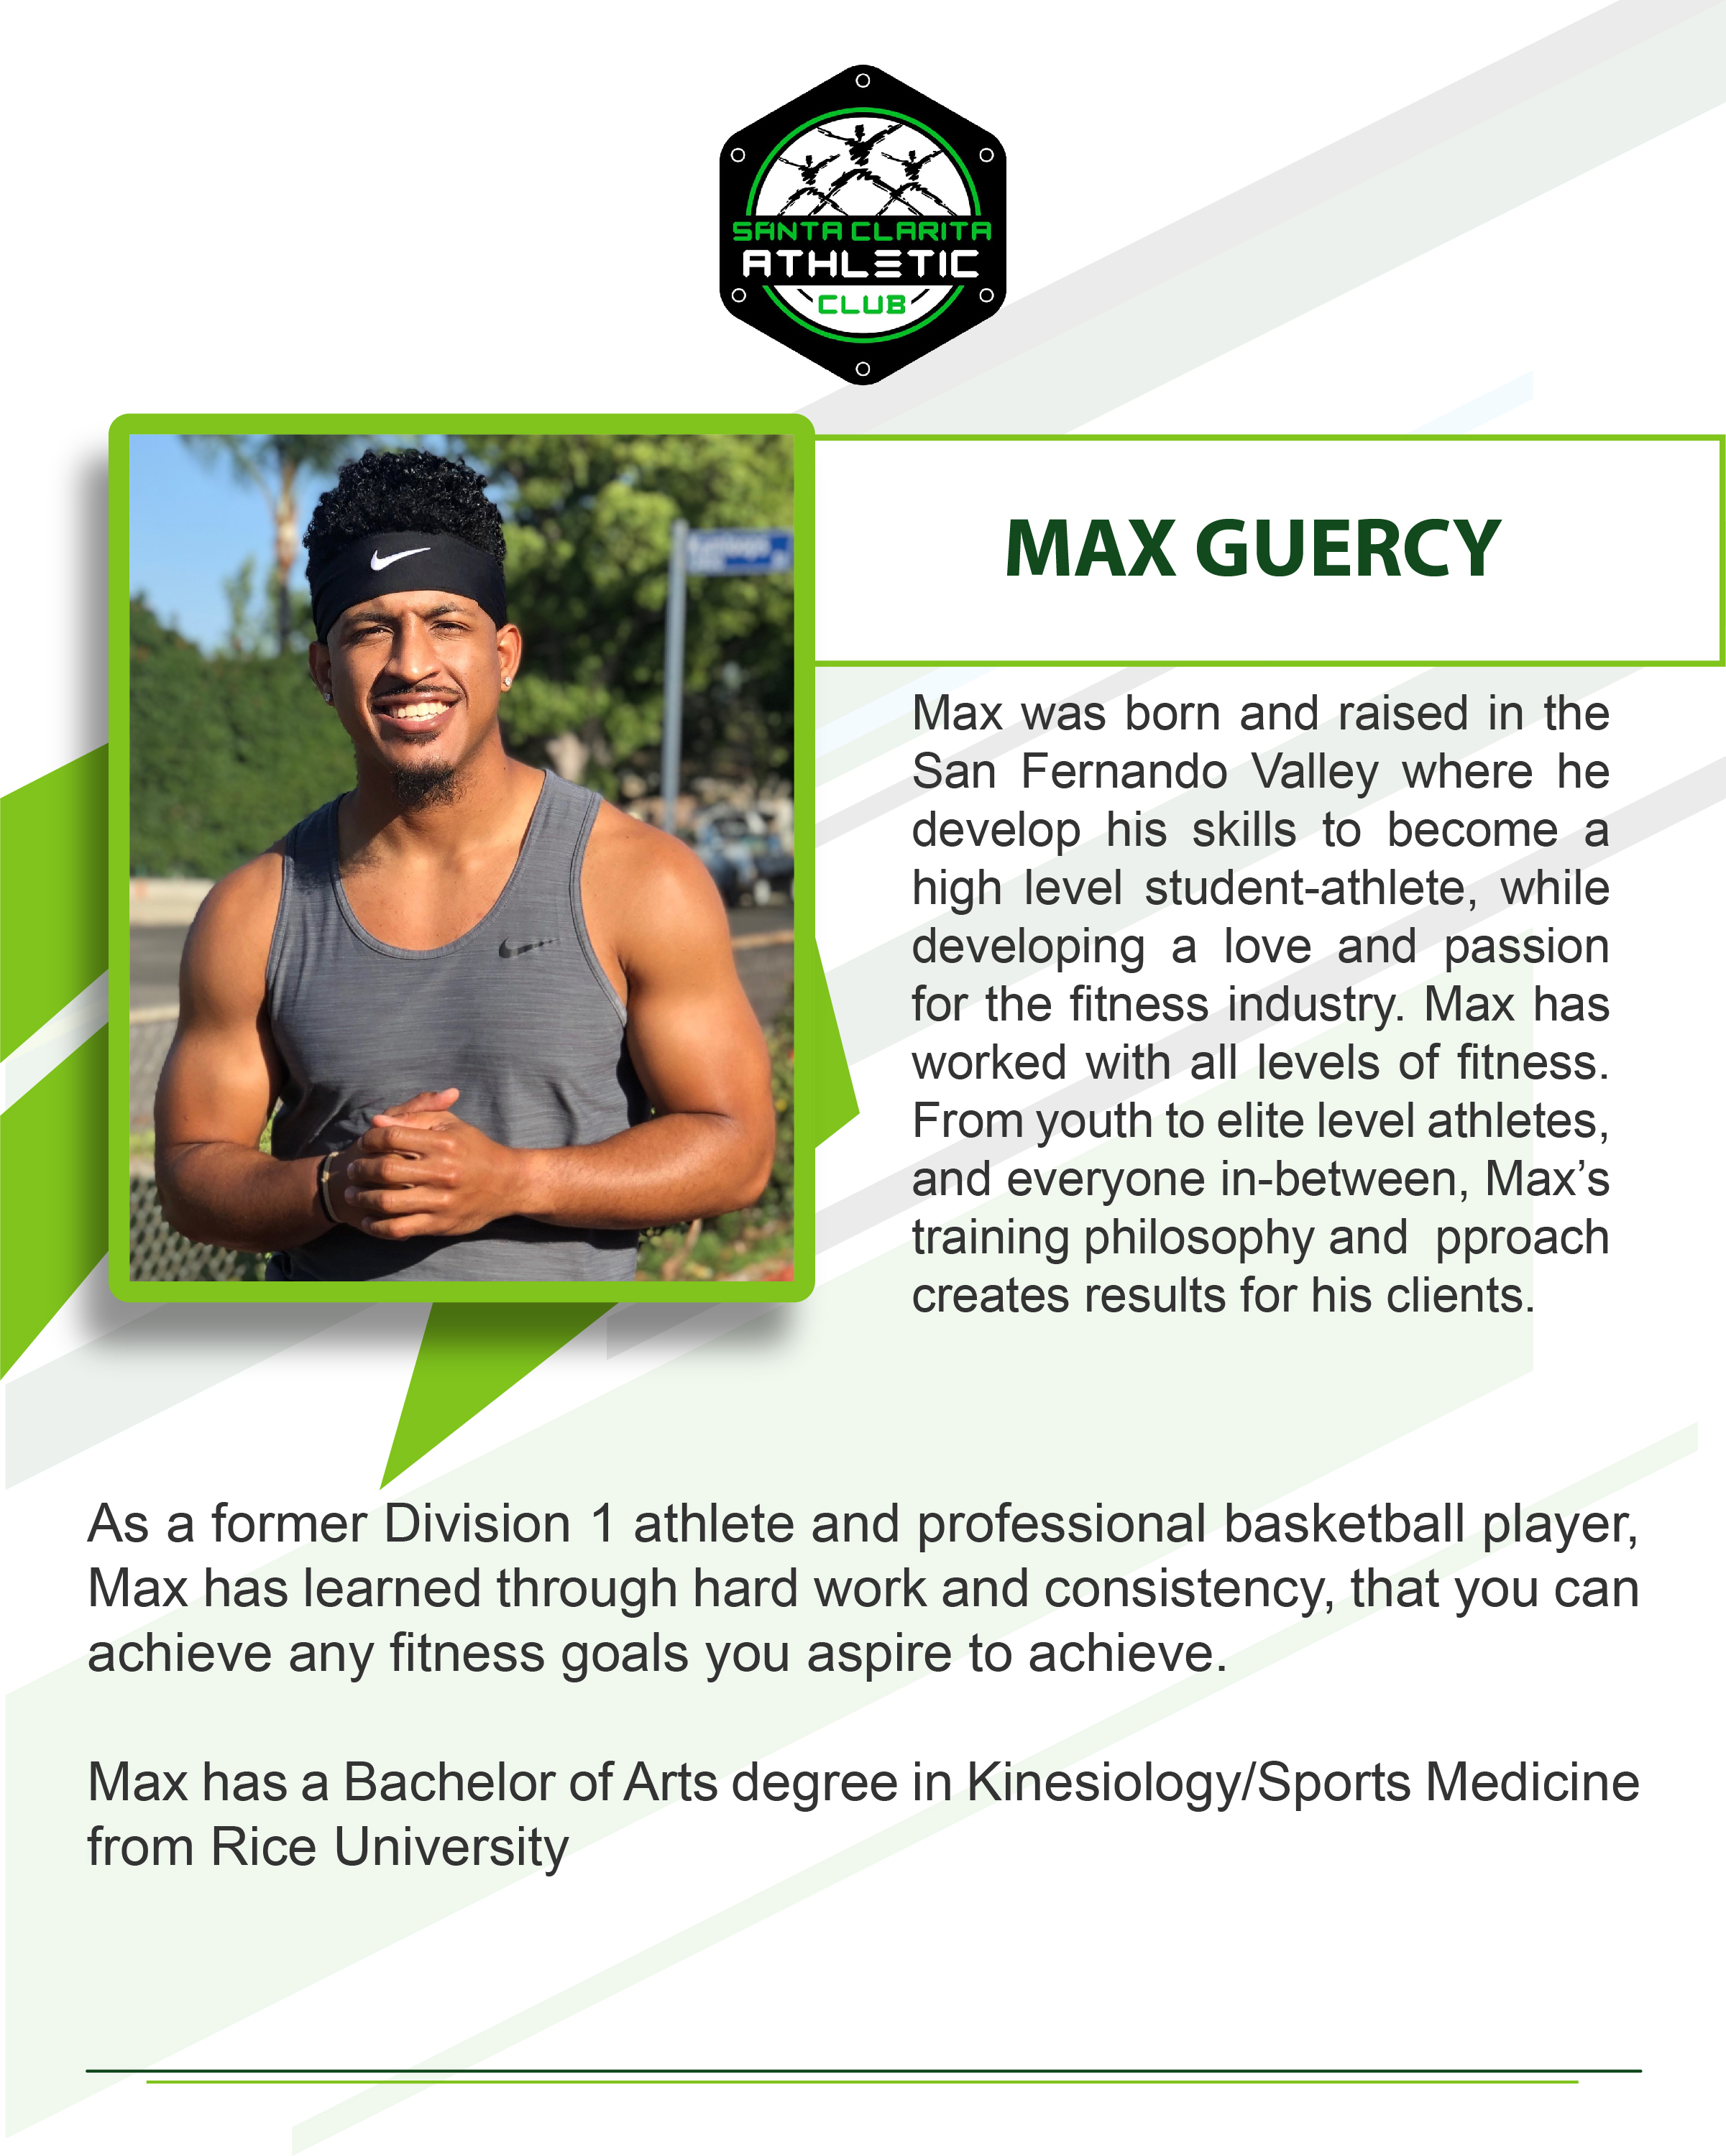 Max Guercy - Certified Personal Trainer